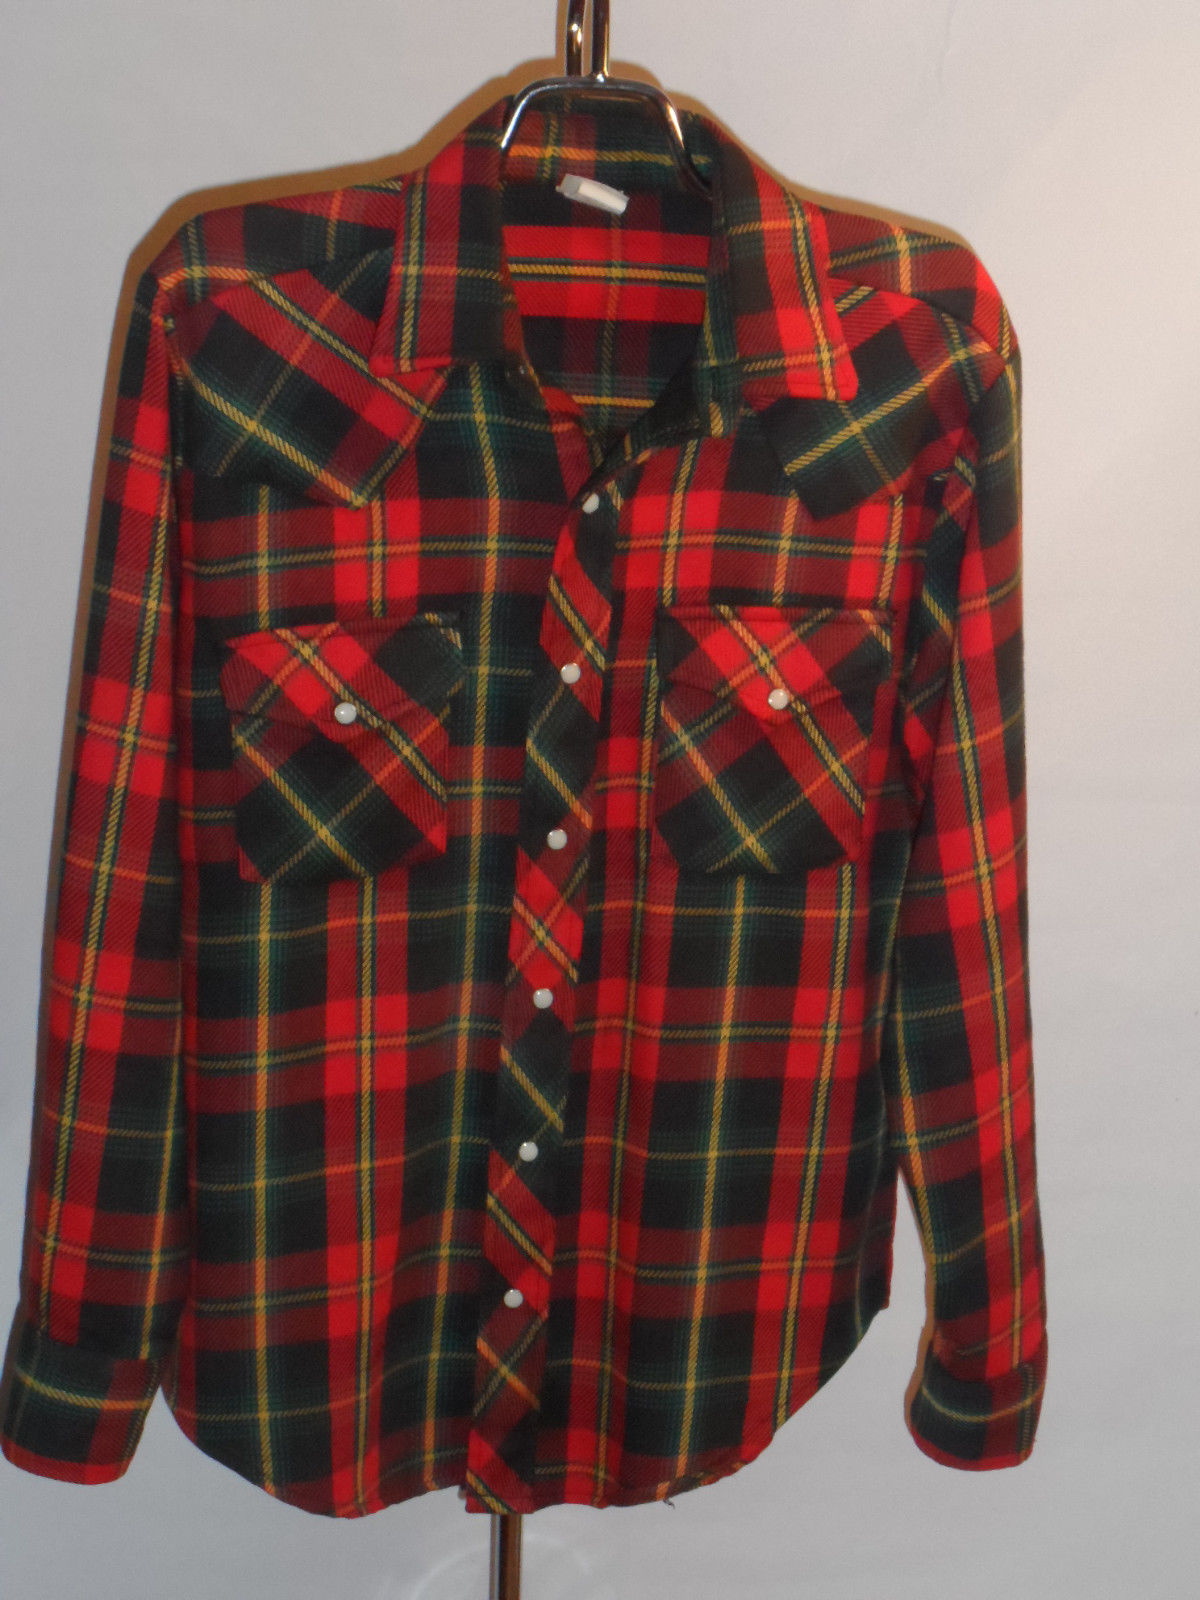 160e3a92 1960s Sears Plaid Cowboy Shirt | Classic Vintage Apparel